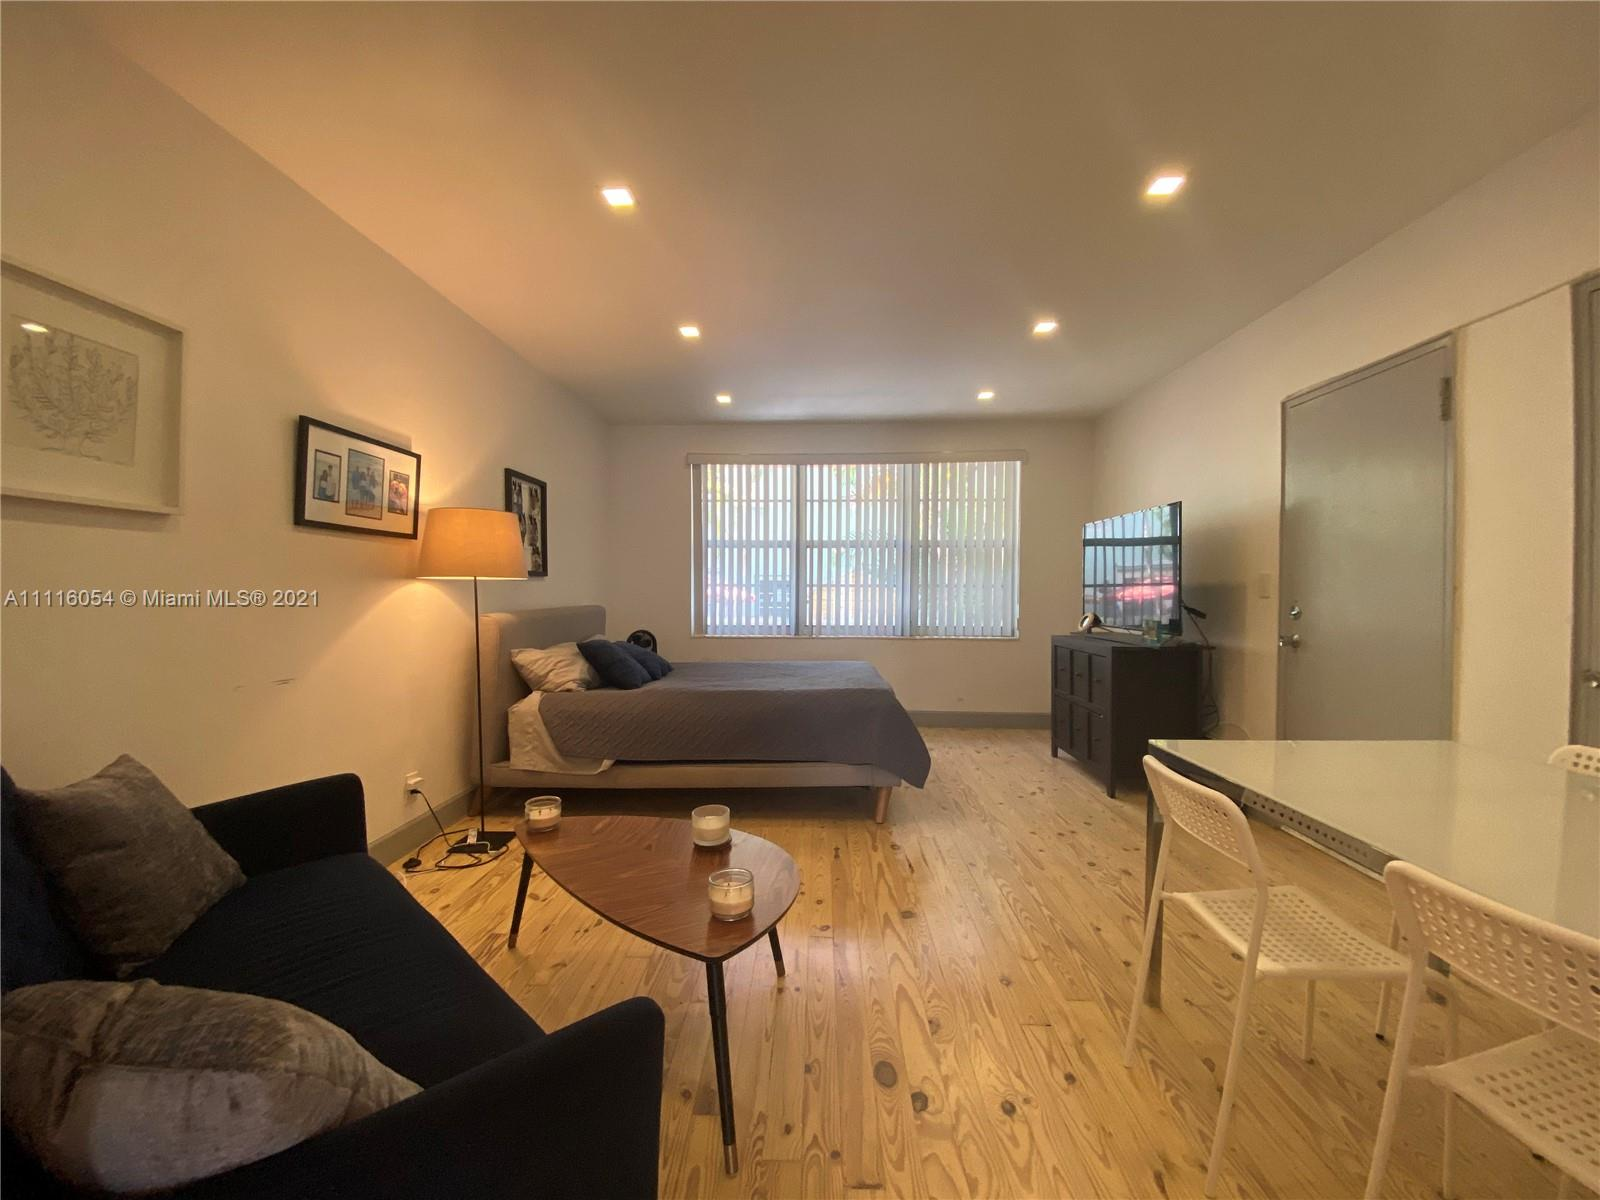 1135  Meridian Ave #1 For Sale A11116054, FL